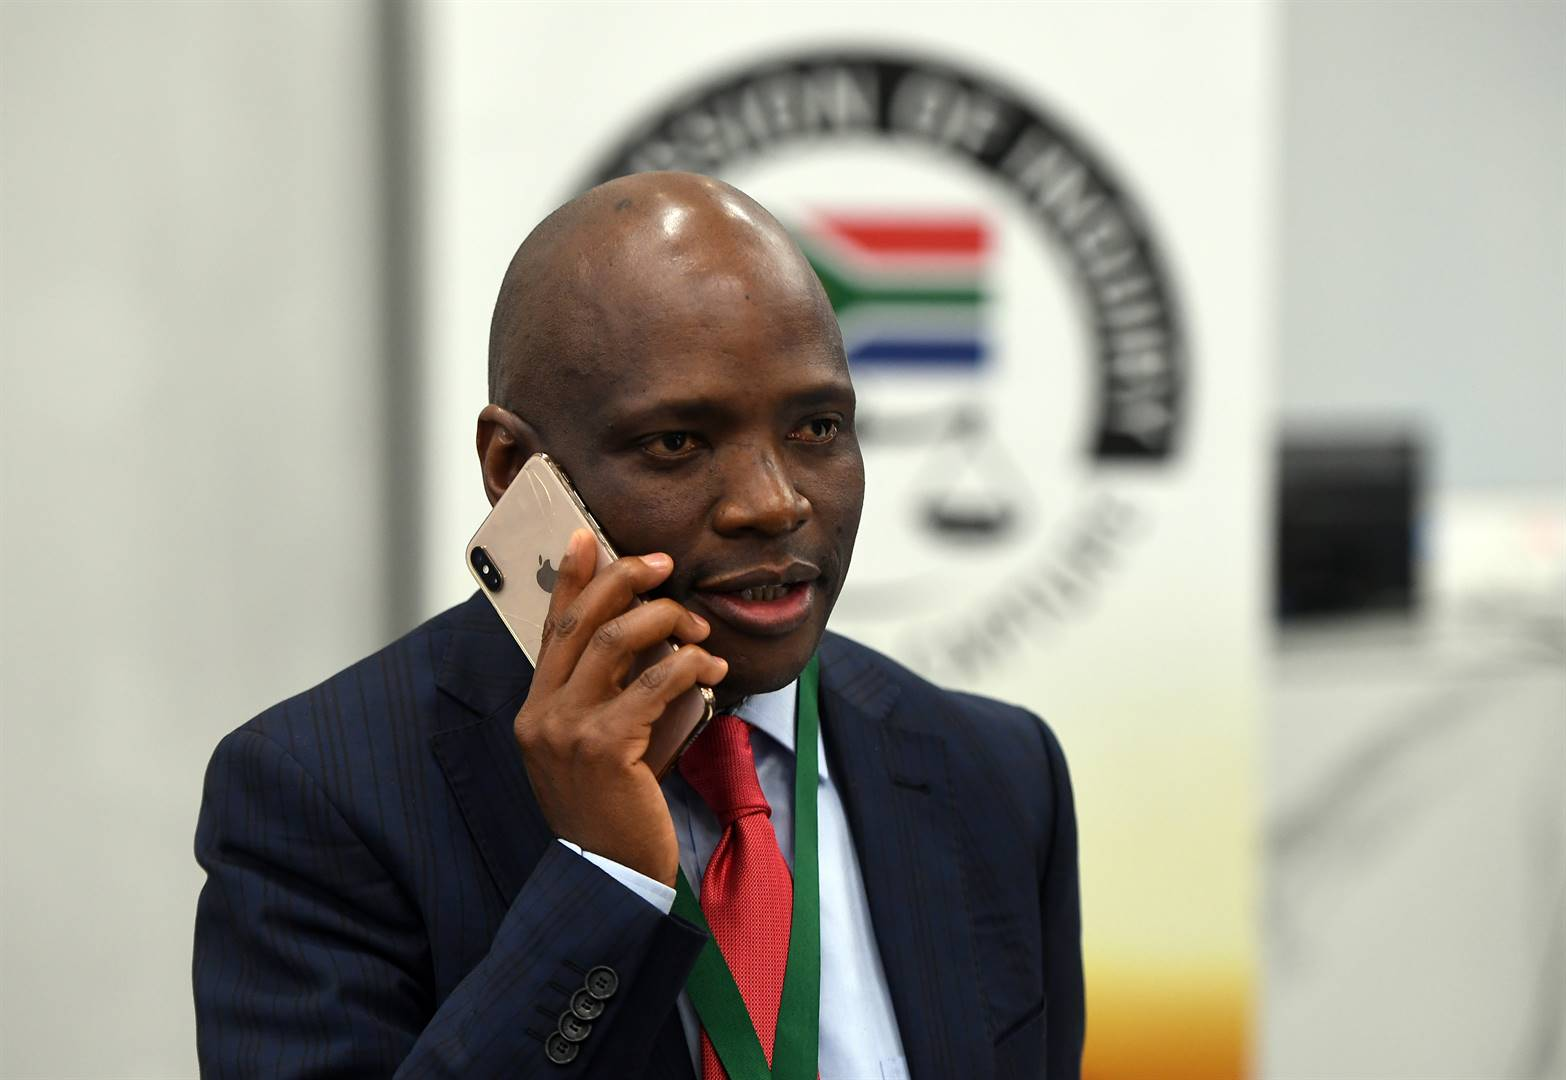 News24.com | Hlaudi Motsoeneng ordered to pay again bigger than R850k of SABC money worn for private upright costs